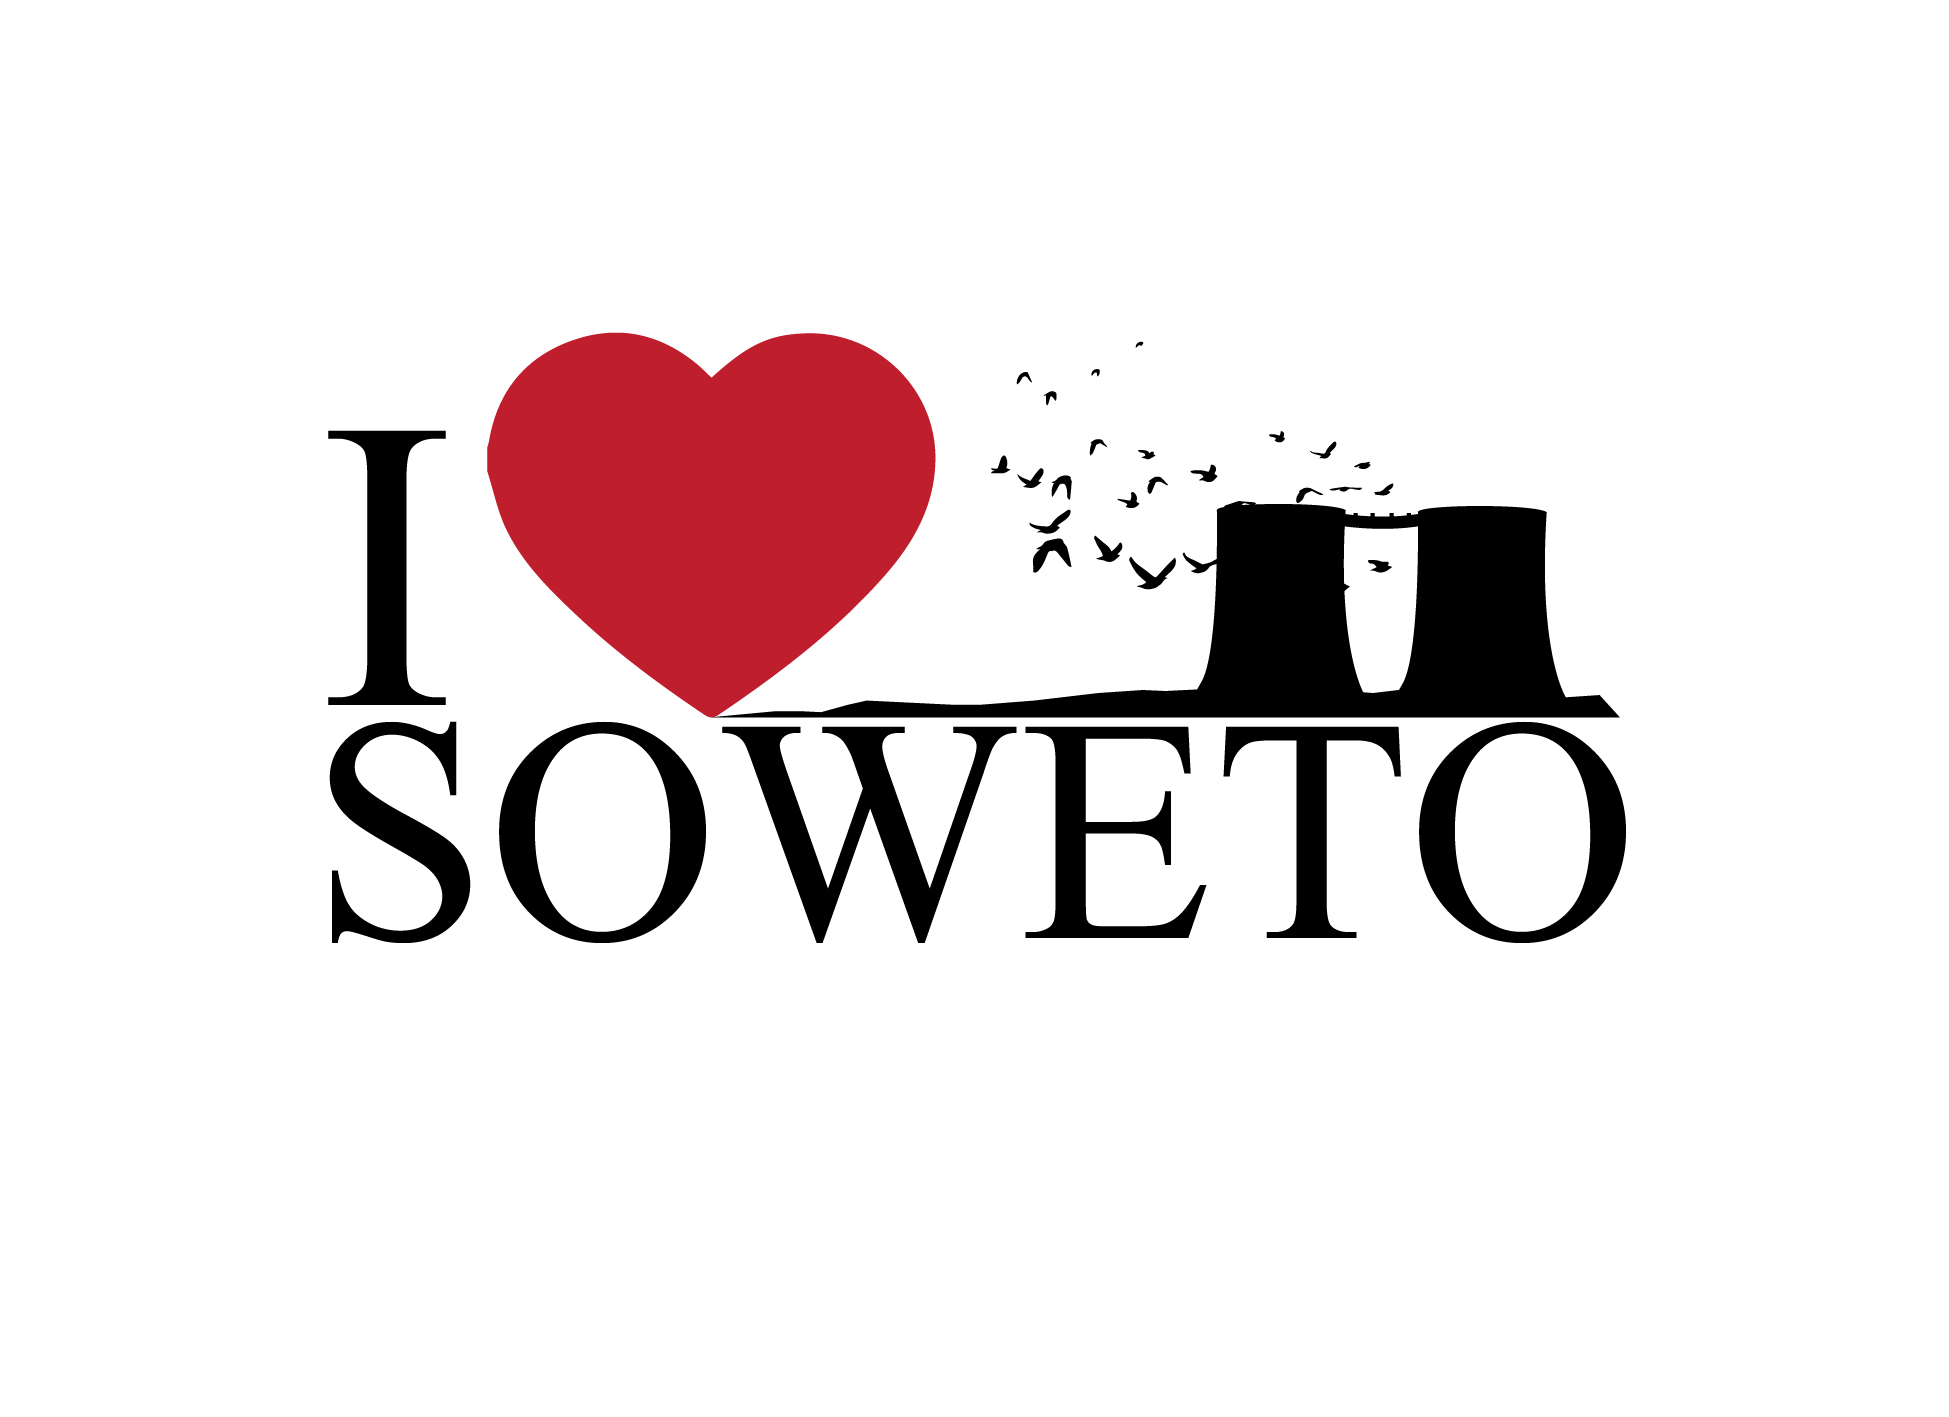 3 MUST see places in Soweto.